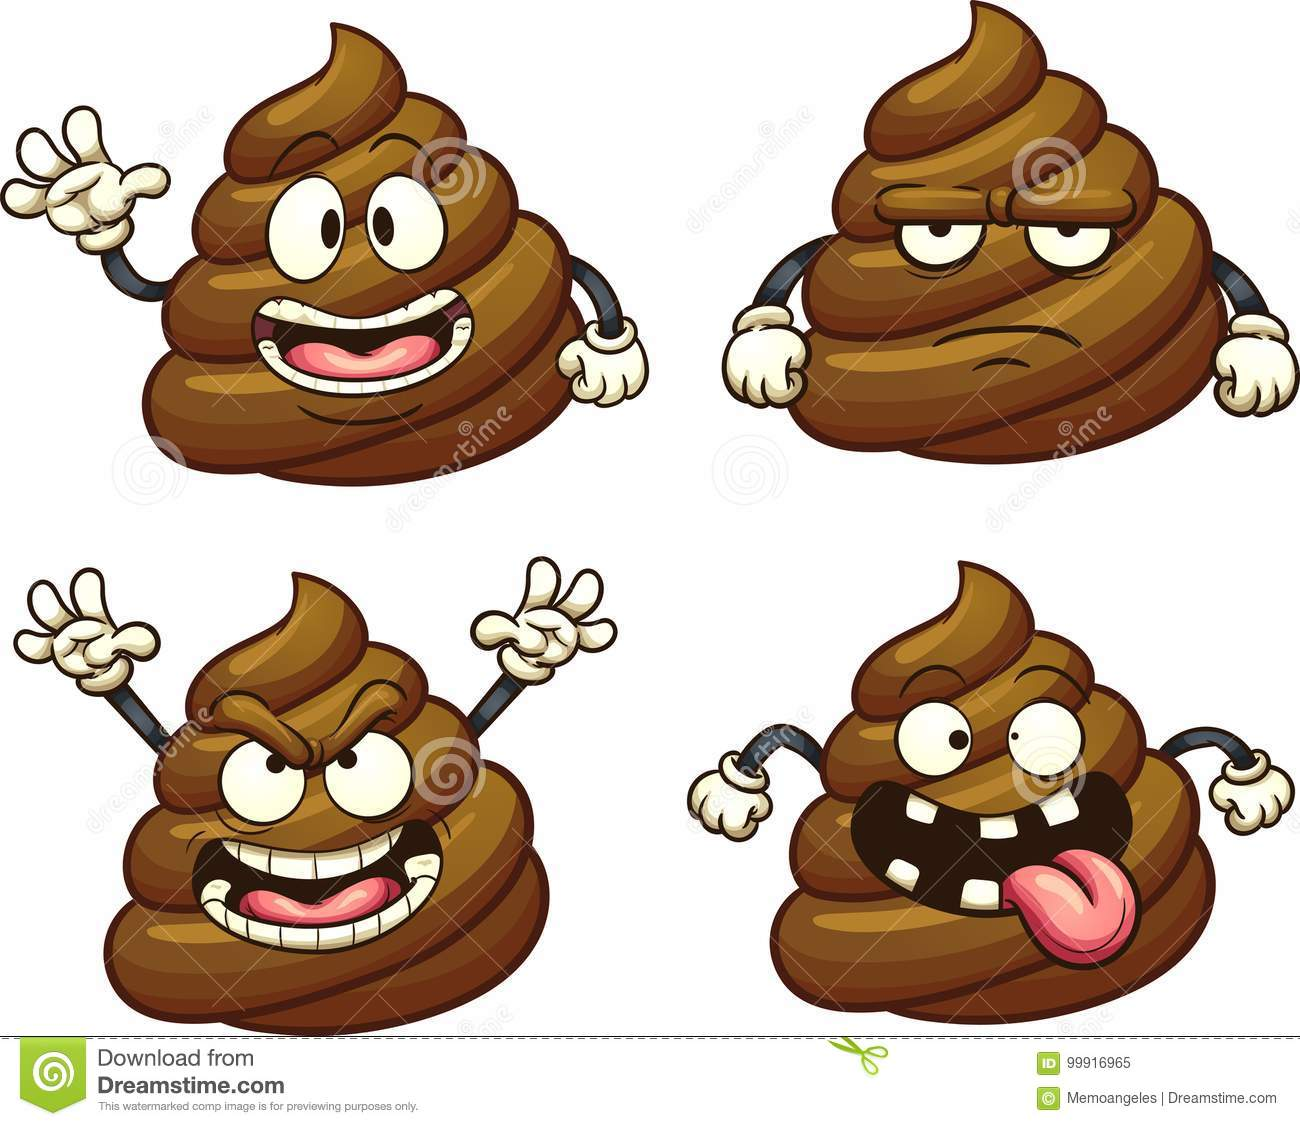 Cartoon poop stock illustrations 1473 cartoon poop stock illustrations vectors clipart dreamstime